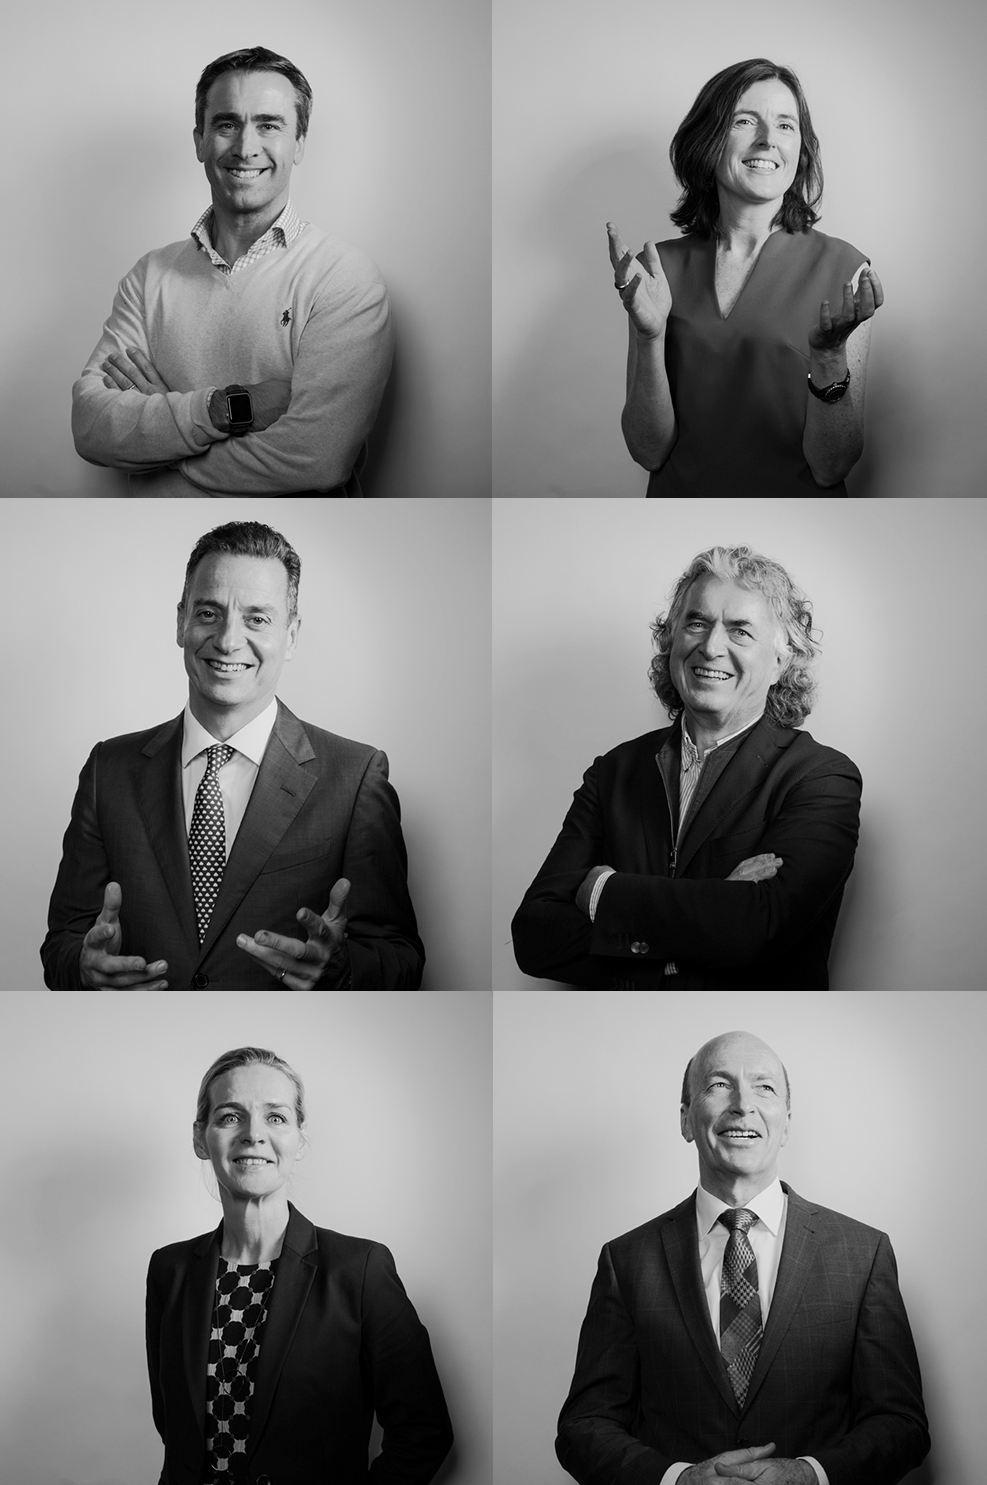 black and white happy board of director portraits against a white backdrop